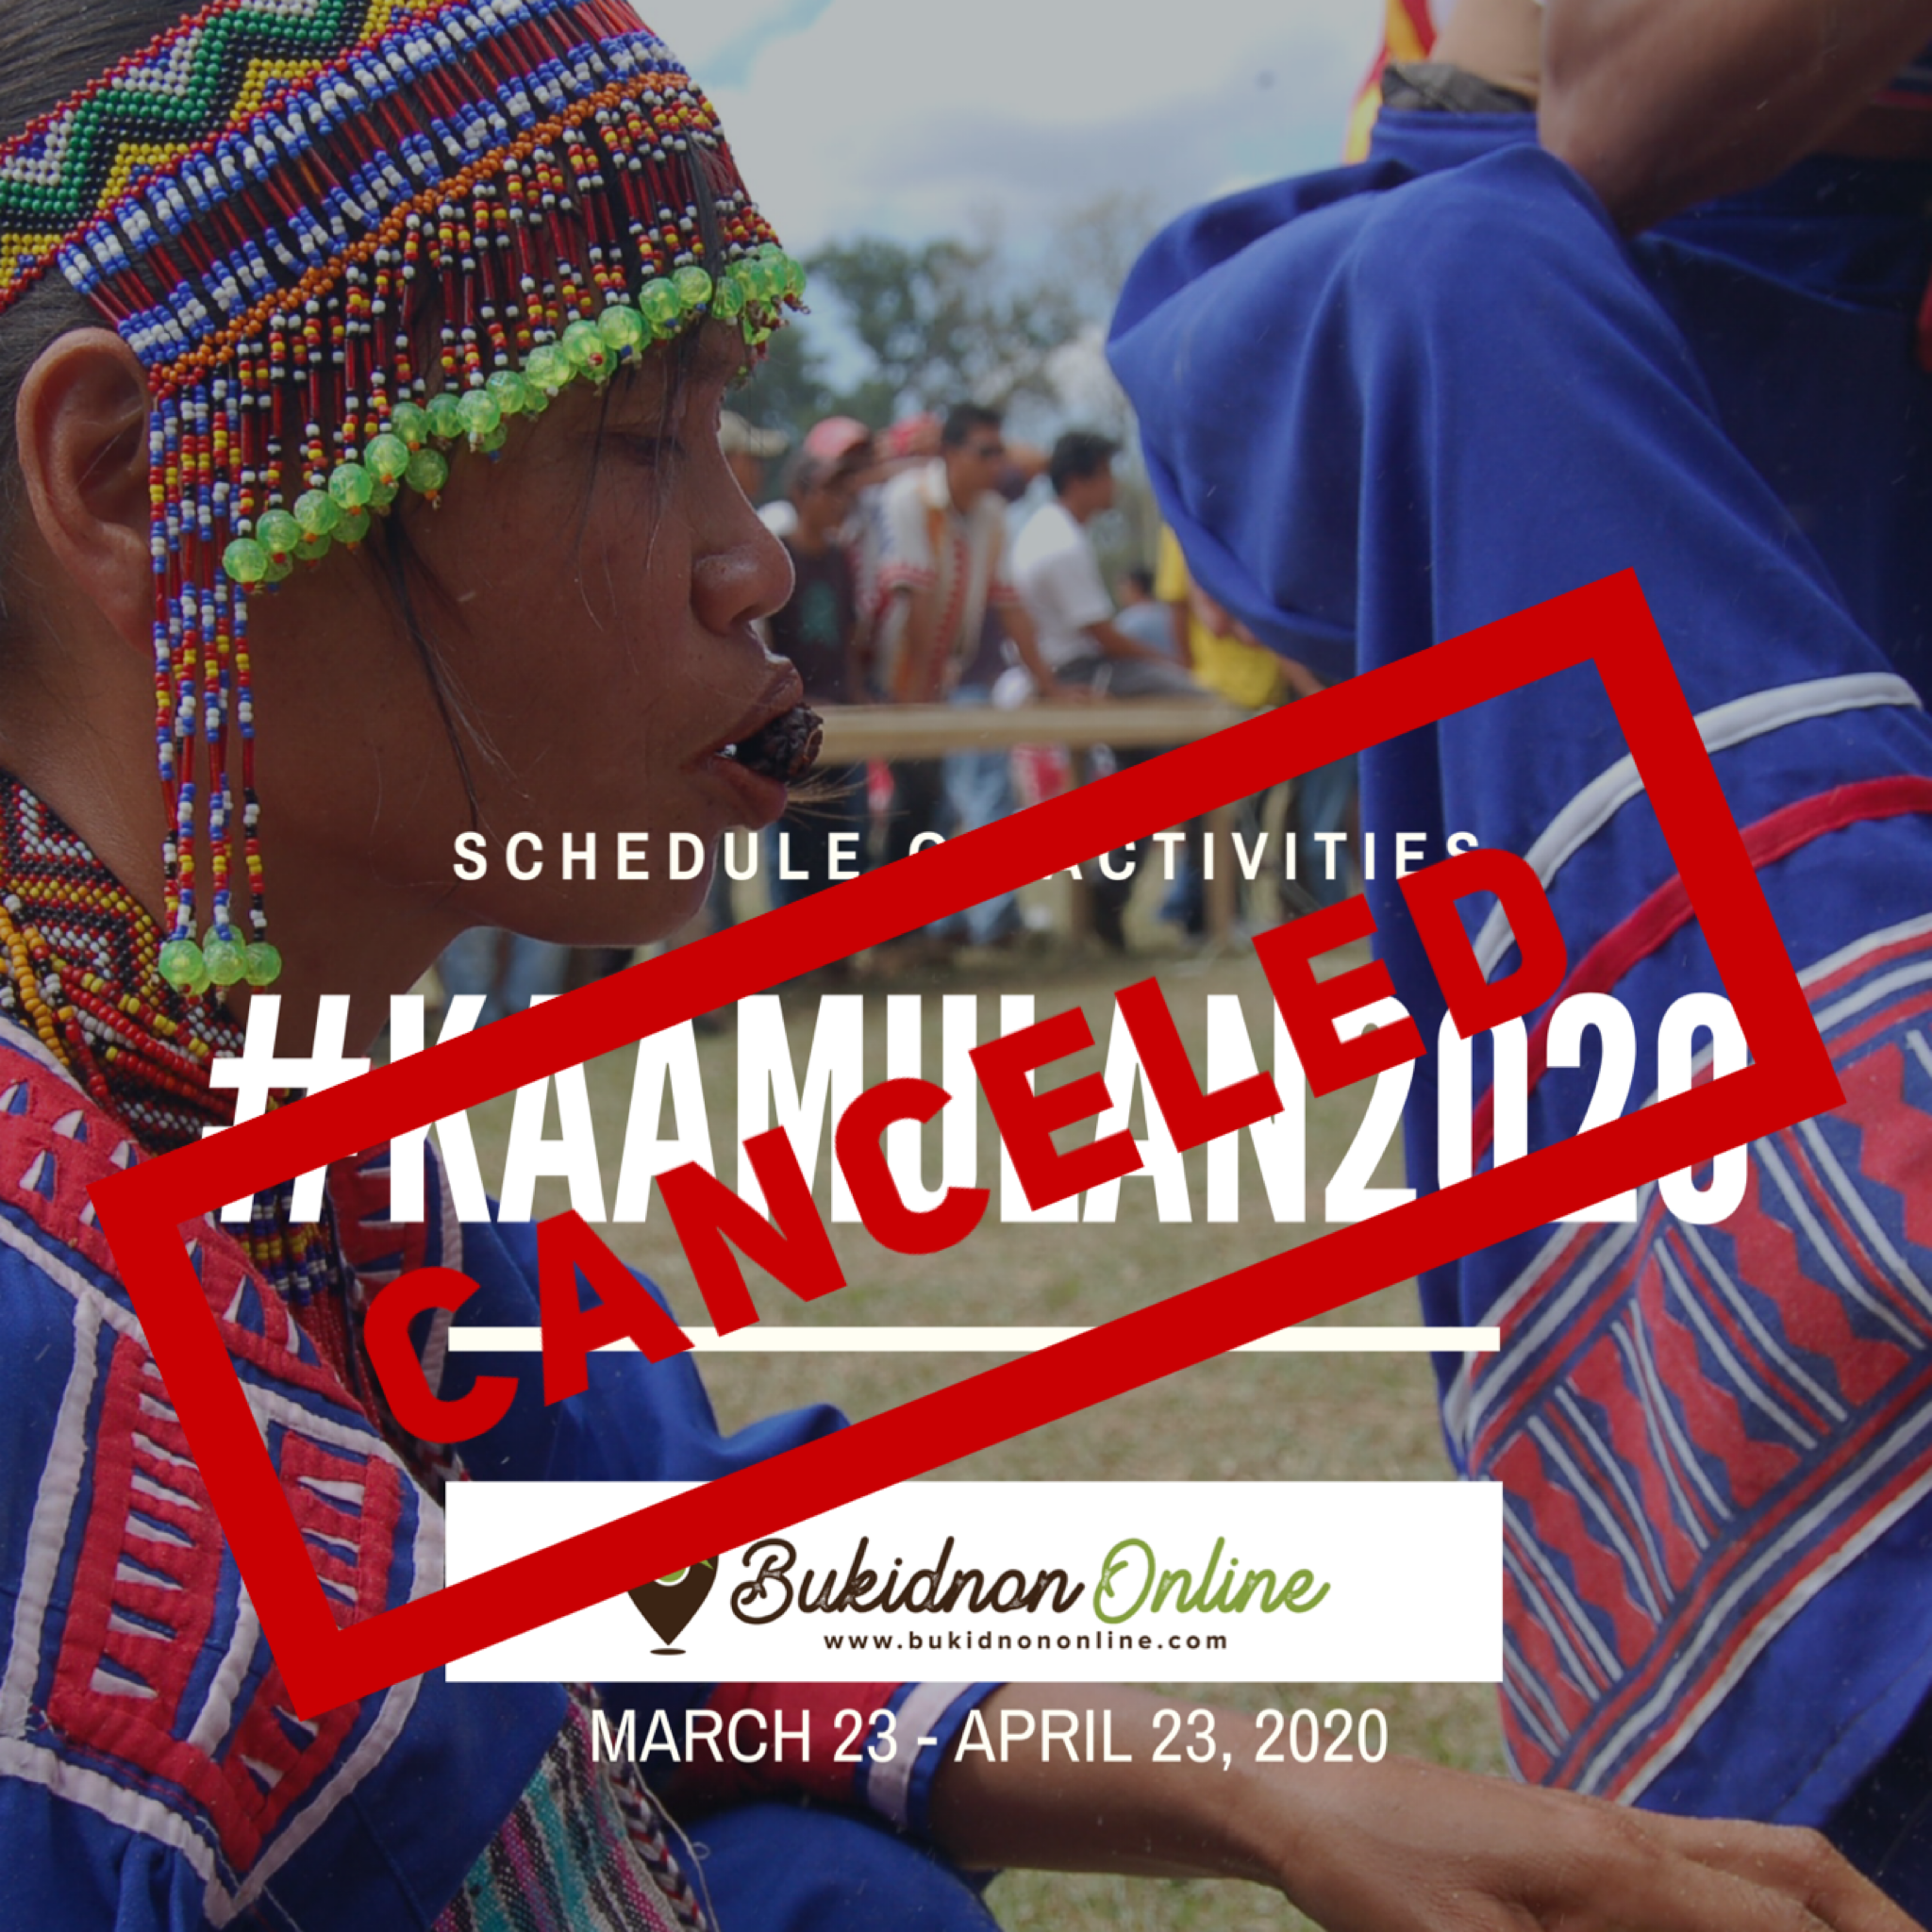 UPDATED: Kaamulan Festival 2020 in Bukidnon now canceled